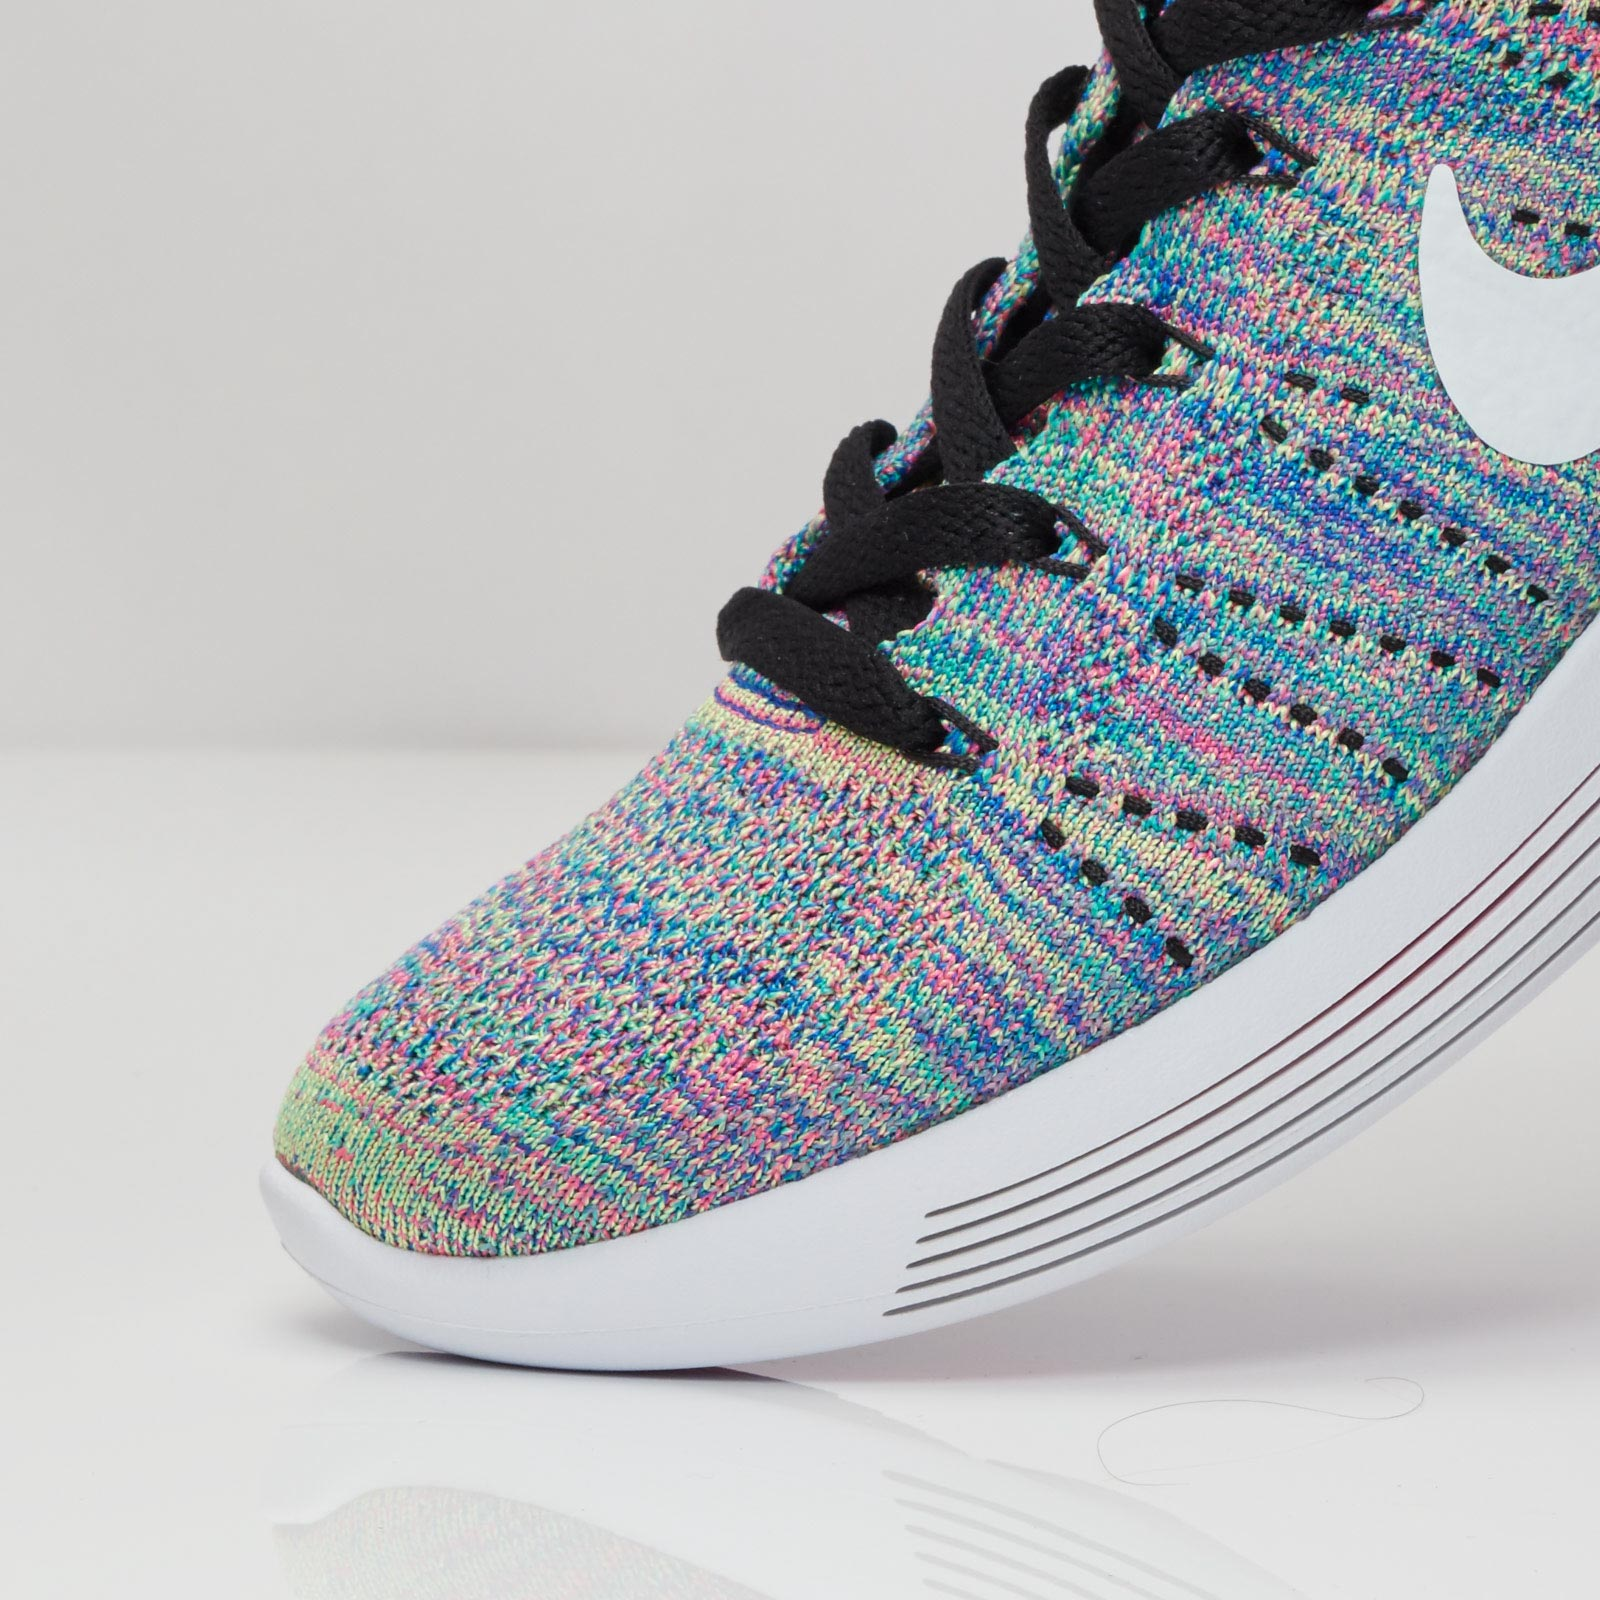 a0a11e07af77 Nike Wmns Lunarepic Low Flyknit - 843765-004 - Sneakersnstuff ...